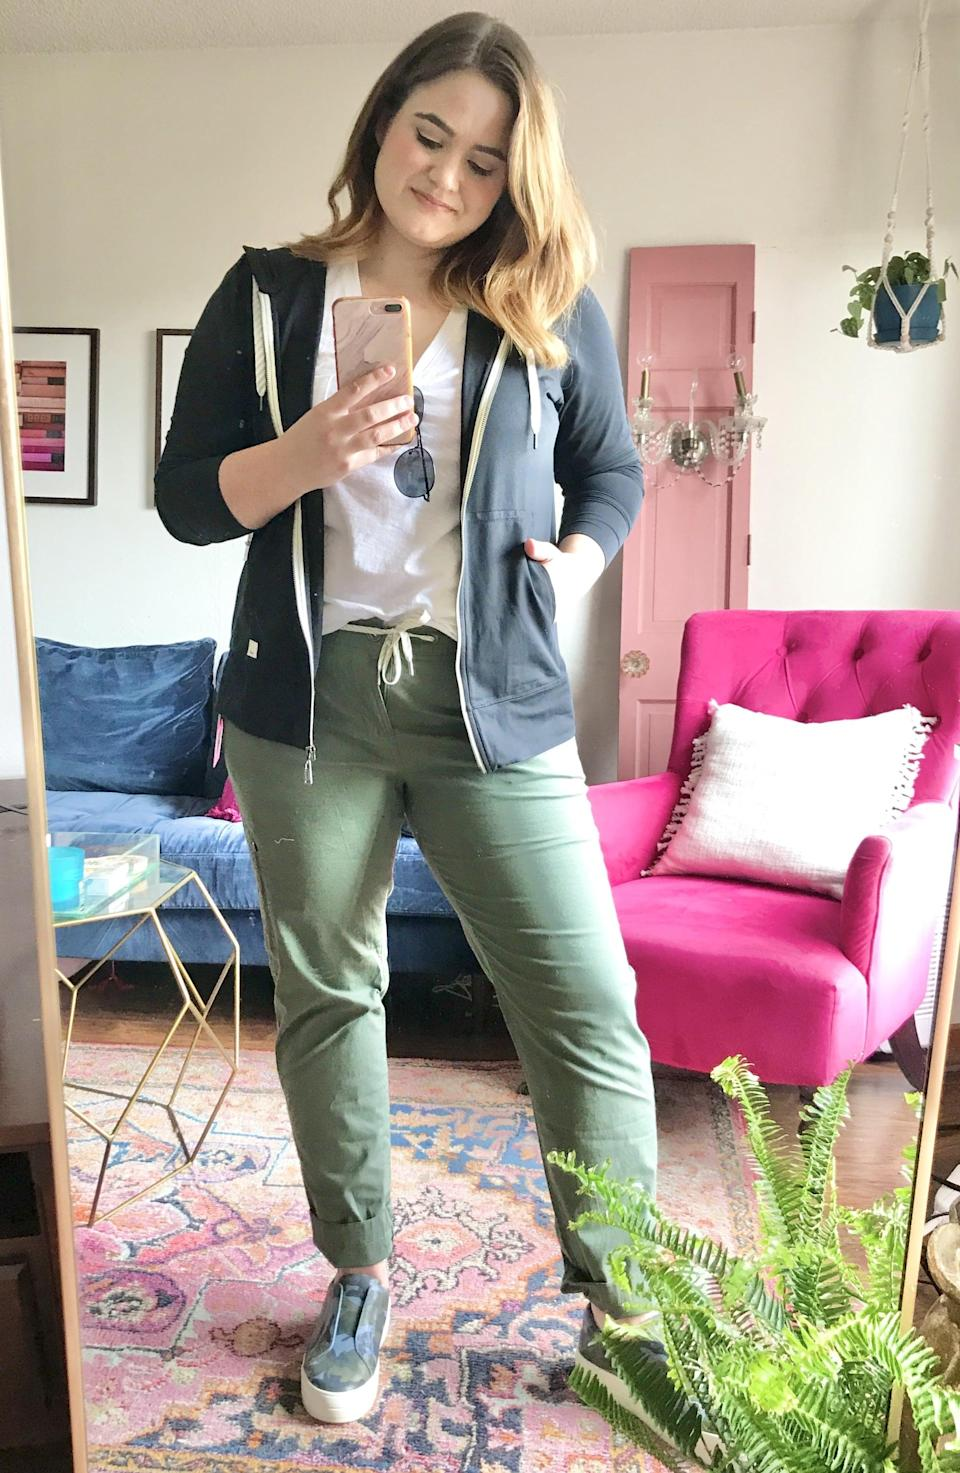 """<p><strong>The Pieces in My Trunk:</strong> <a href=""""https://www.popsugar.com/buy/Vuori-Ripstop-Pants-578663?p_name=Vuori%20Ripstop%20Pants&retailer=shop.nordstrom.com&pid=578663&price=89&evar1=fab%3Aus&evar9=47518852&evar98=https%3A%2F%2Fwww.popsugar.com%2Fphoto-gallery%2F47518852%2Fimage%2F47518856%2FWeekend-Errands&list1=reviews%2Cshopping%2Cnordstrom%2Ceditors%20pick%2Cproduct%20reviews%2Csubscription%20boxes%2Cfashion%20shopping%2Cstaying%20home&prop13=api&pdata=1"""" class=""""link rapid-noclick-resp"""" rel=""""nofollow noopener"""" target=""""_blank"""" data-ylk=""""slk:Vuori Ripstop Pants"""">Vuori Ripstop Pants</a> ($89)<br> <a href=""""https://www.popsugar.com/buy/Vuori-Performance-Zip-Front-Hoodie-578664?p_name=Vuori%20Performance%20Zip%20Front%20Hoodie&retailer=shop.nordstrom.com&pid=578664&price=89&evar1=fab%3Aus&evar9=47518852&evar98=https%3A%2F%2Fwww.popsugar.com%2Fphoto-gallery%2F47518852%2Fimage%2F47518856%2FWeekend-Errands&list1=reviews%2Cshopping%2Cnordstrom%2Ceditors%20pick%2Cproduct%20reviews%2Csubscription%20boxes%2Cfashion%20shopping%2Cstaying%20home&prop13=api&pdata=1"""" class=""""link rapid-noclick-resp"""" rel=""""nofollow noopener"""" target=""""_blank"""" data-ylk=""""slk:Vuori Performance Zip Front Hoodie"""">Vuori Performance Zip Front Hoodie</a> ($89)<br> <a href=""""https://www.popsugar.com/buy/Madewell-Whisper-Cotton-V-Neck-Tank-578660?p_name=Madewell%20Whisper%20Cotton%20V-Neck%20Tank&retailer=shop.nordstrom.com&pid=578660&price=19&evar1=fab%3Aus&evar9=47518852&evar98=https%3A%2F%2Fwww.popsugar.com%2Fphoto-gallery%2F47518852%2Fimage%2F47518856%2FWeekend-Errands&list1=reviews%2Cshopping%2Cnordstrom%2Ceditors%20pick%2Cproduct%20reviews%2Csubscription%20boxes%2Cfashion%20shopping%2Cstaying%20home&prop13=api&pdata=1"""" class=""""link rapid-noclick-resp"""" rel=""""nofollow noopener"""" target=""""_blank"""" data-ylk=""""slk:Madewell Whisper Cotton V-Neck Tank"""">Madewell Whisper Cotton V-Neck Tank</a> ($19)<br> <a href=""""https://www.popsugar.com/buy/JSlides-Heidi-Platform-Slip--Sneakers-583813?p_name=JSlides%20Heidi%20"""